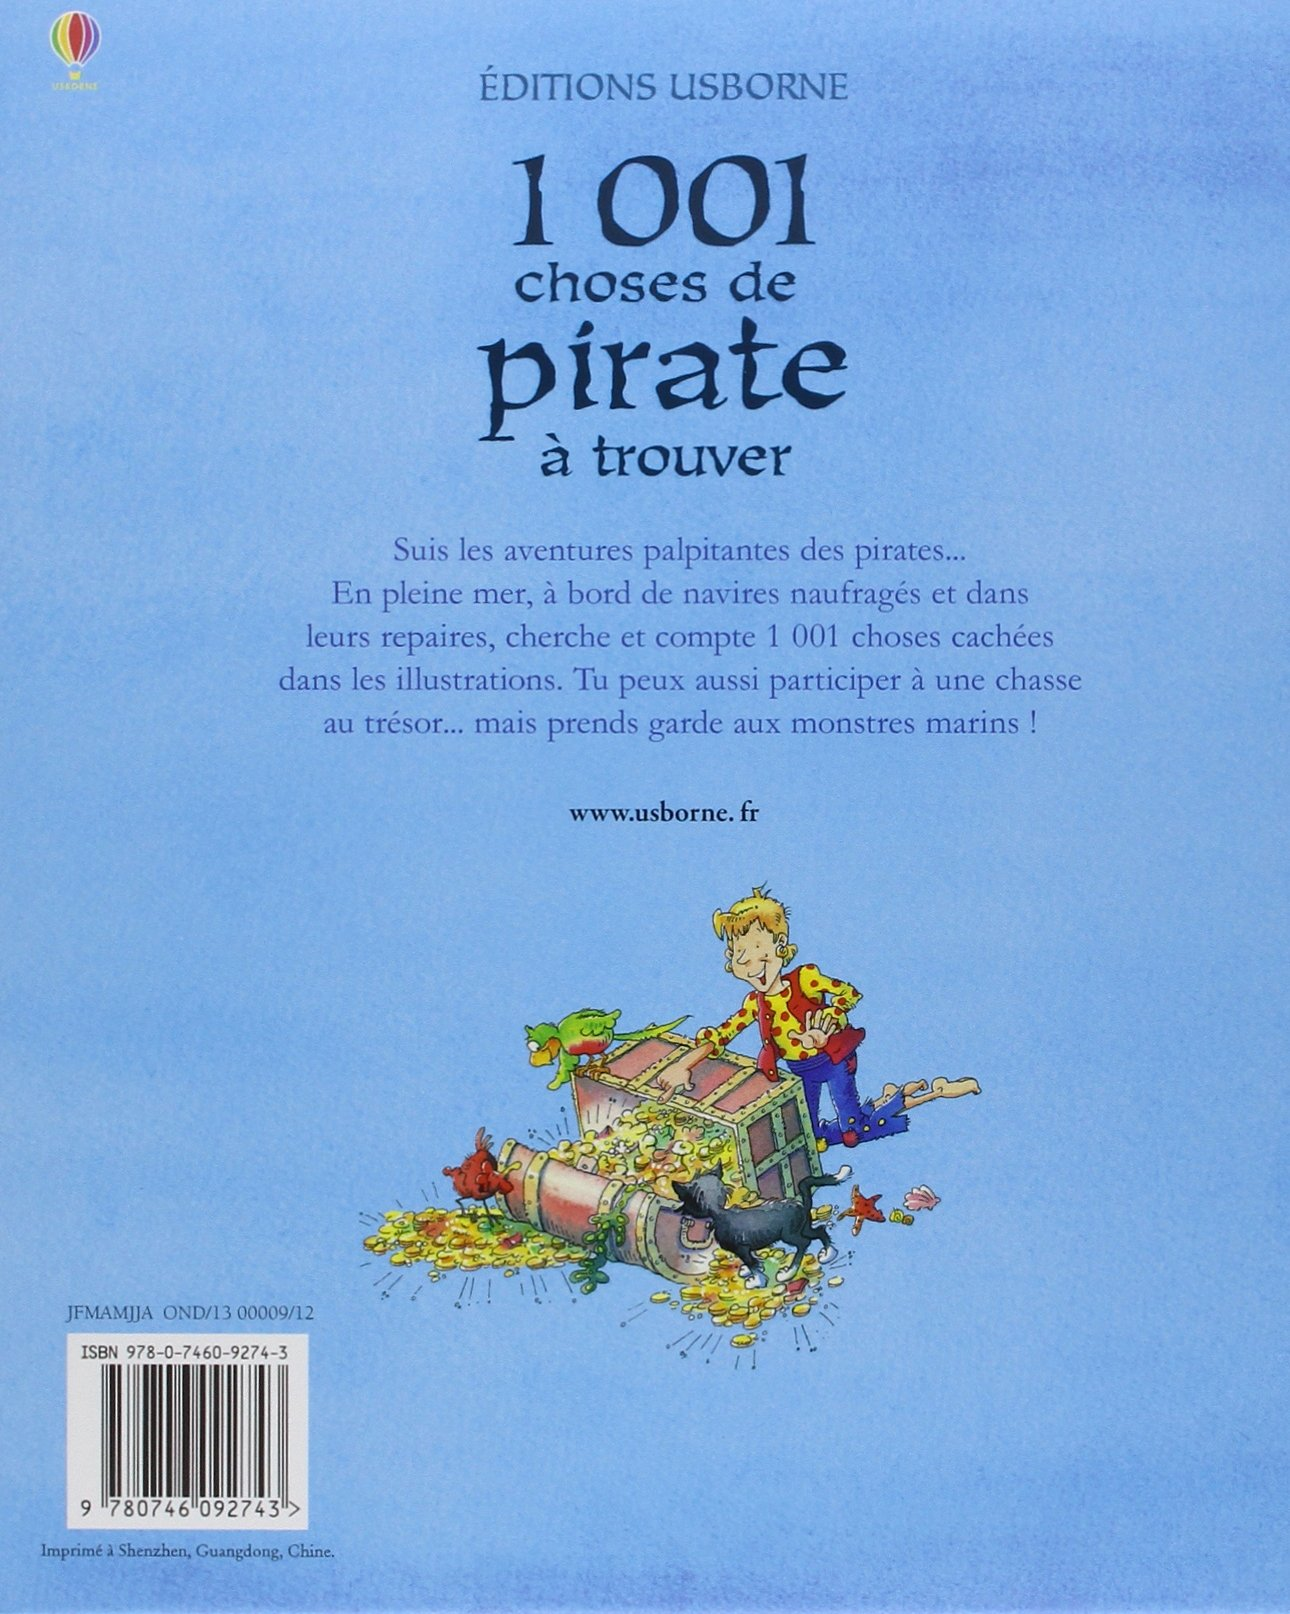 Amazon.fr - 1001 PIRATES A TROUVER - Rob llyod Jones, Teri Gower, Stephanie  Serazin - Livres